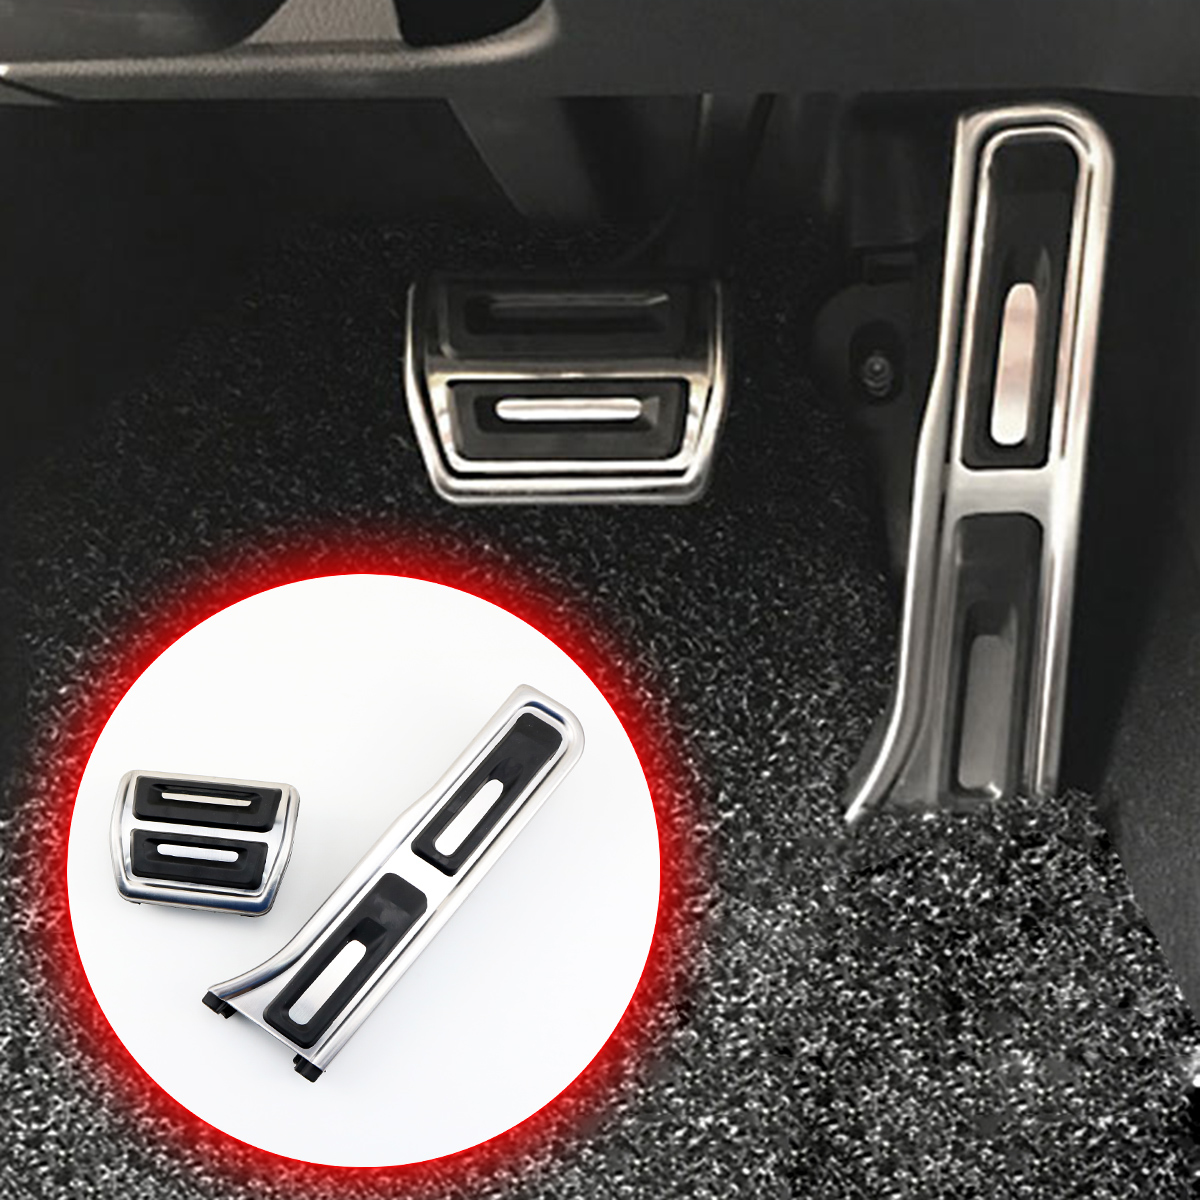 Stainless Steel Non-slip AT Pad Fit For <font><b>Audi</b></font> <font><b>Q3</b></font> 2012-2018 Accessories Brake Gas Fuel Oil Foot <font><b>Pedal</b></font> Cover Trim Antiskid Style image